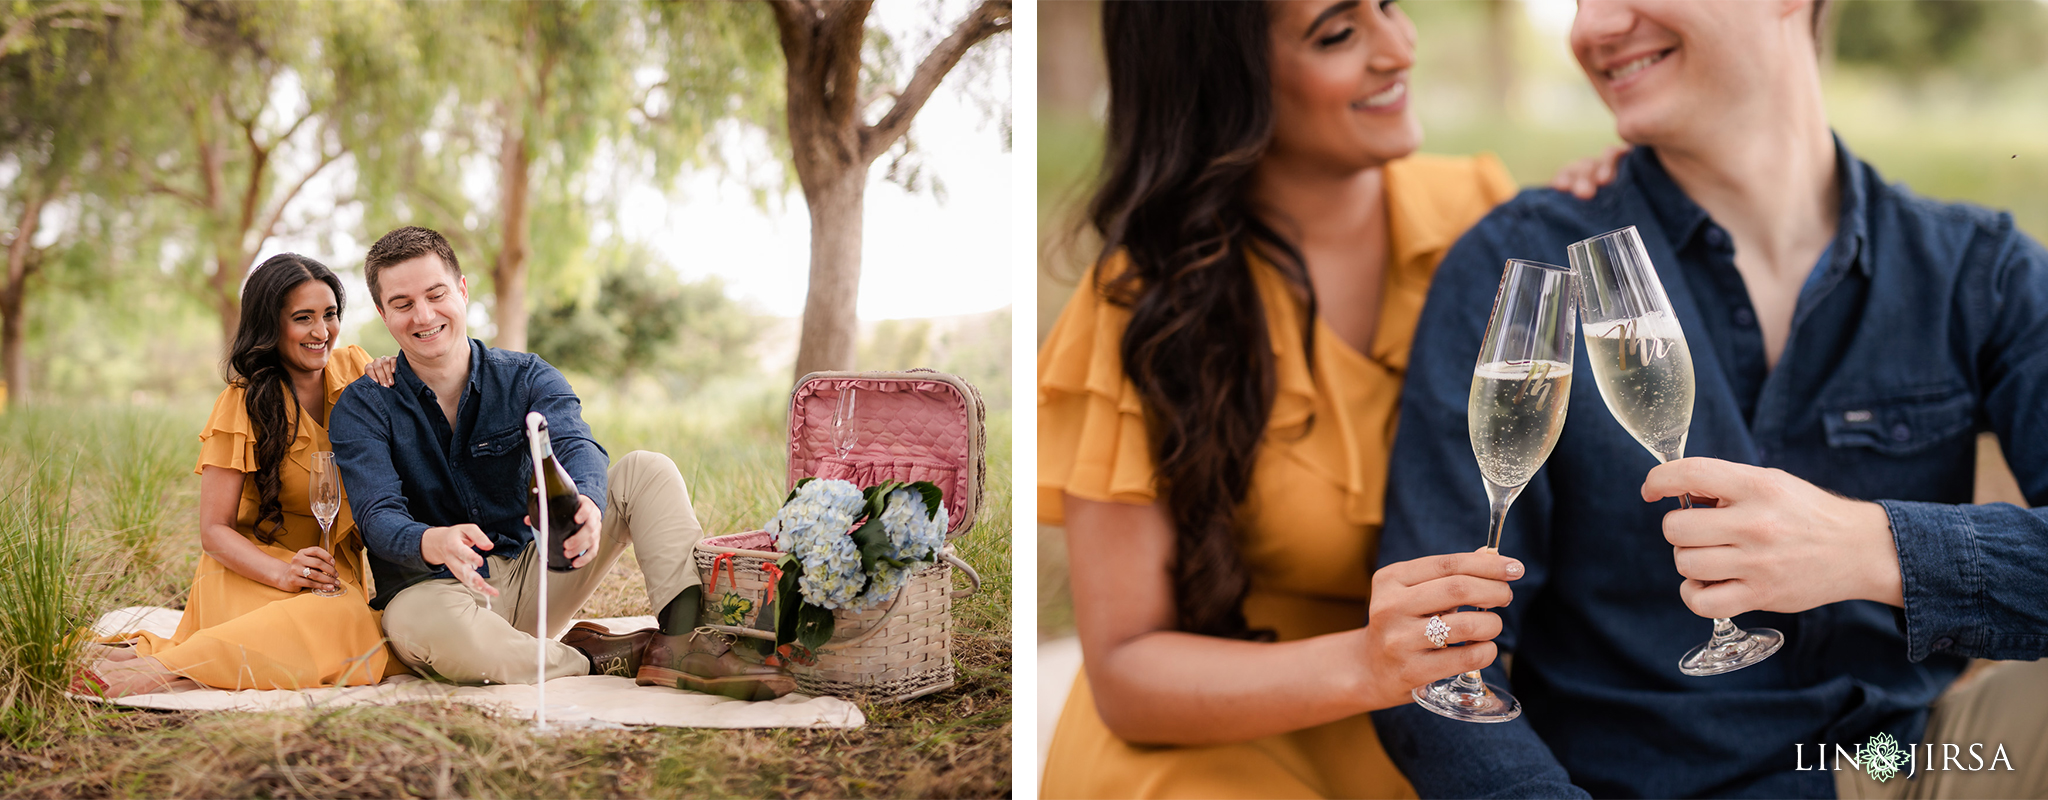 02 Jeffrey Open Space Orange County Engagement Photographer